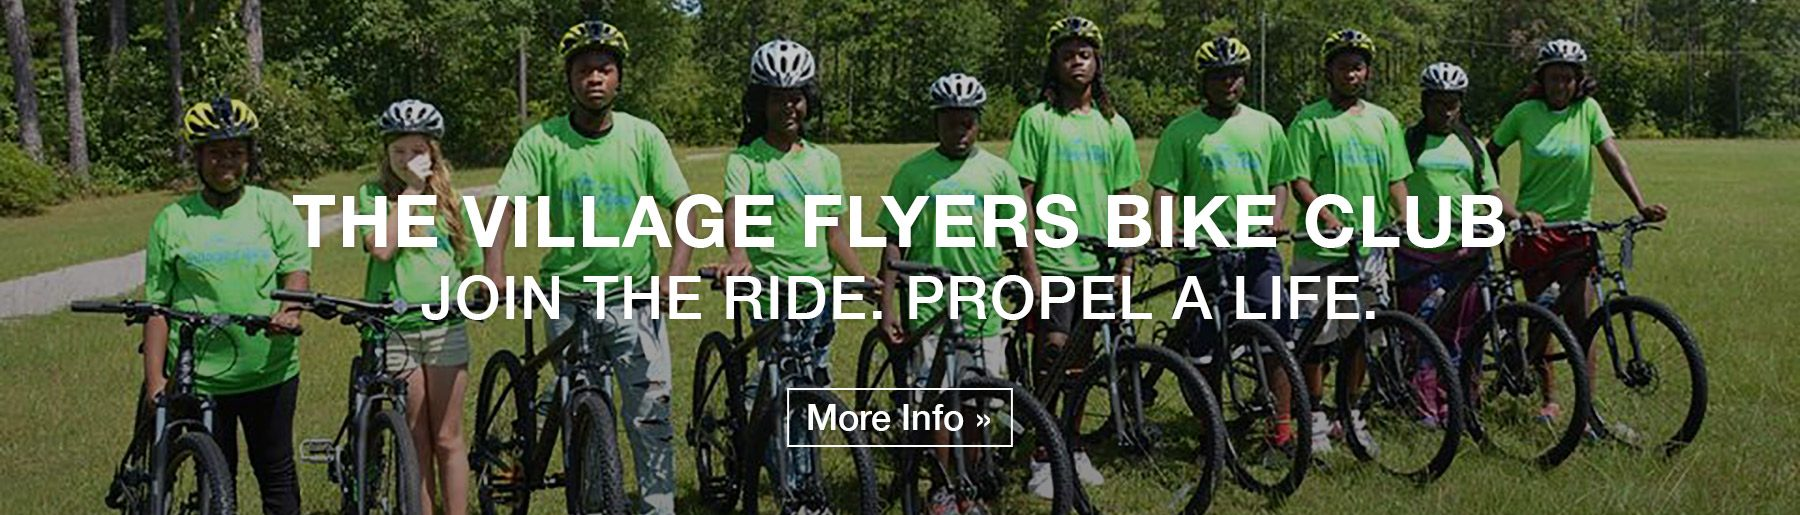 the-village-flyers-bike-club